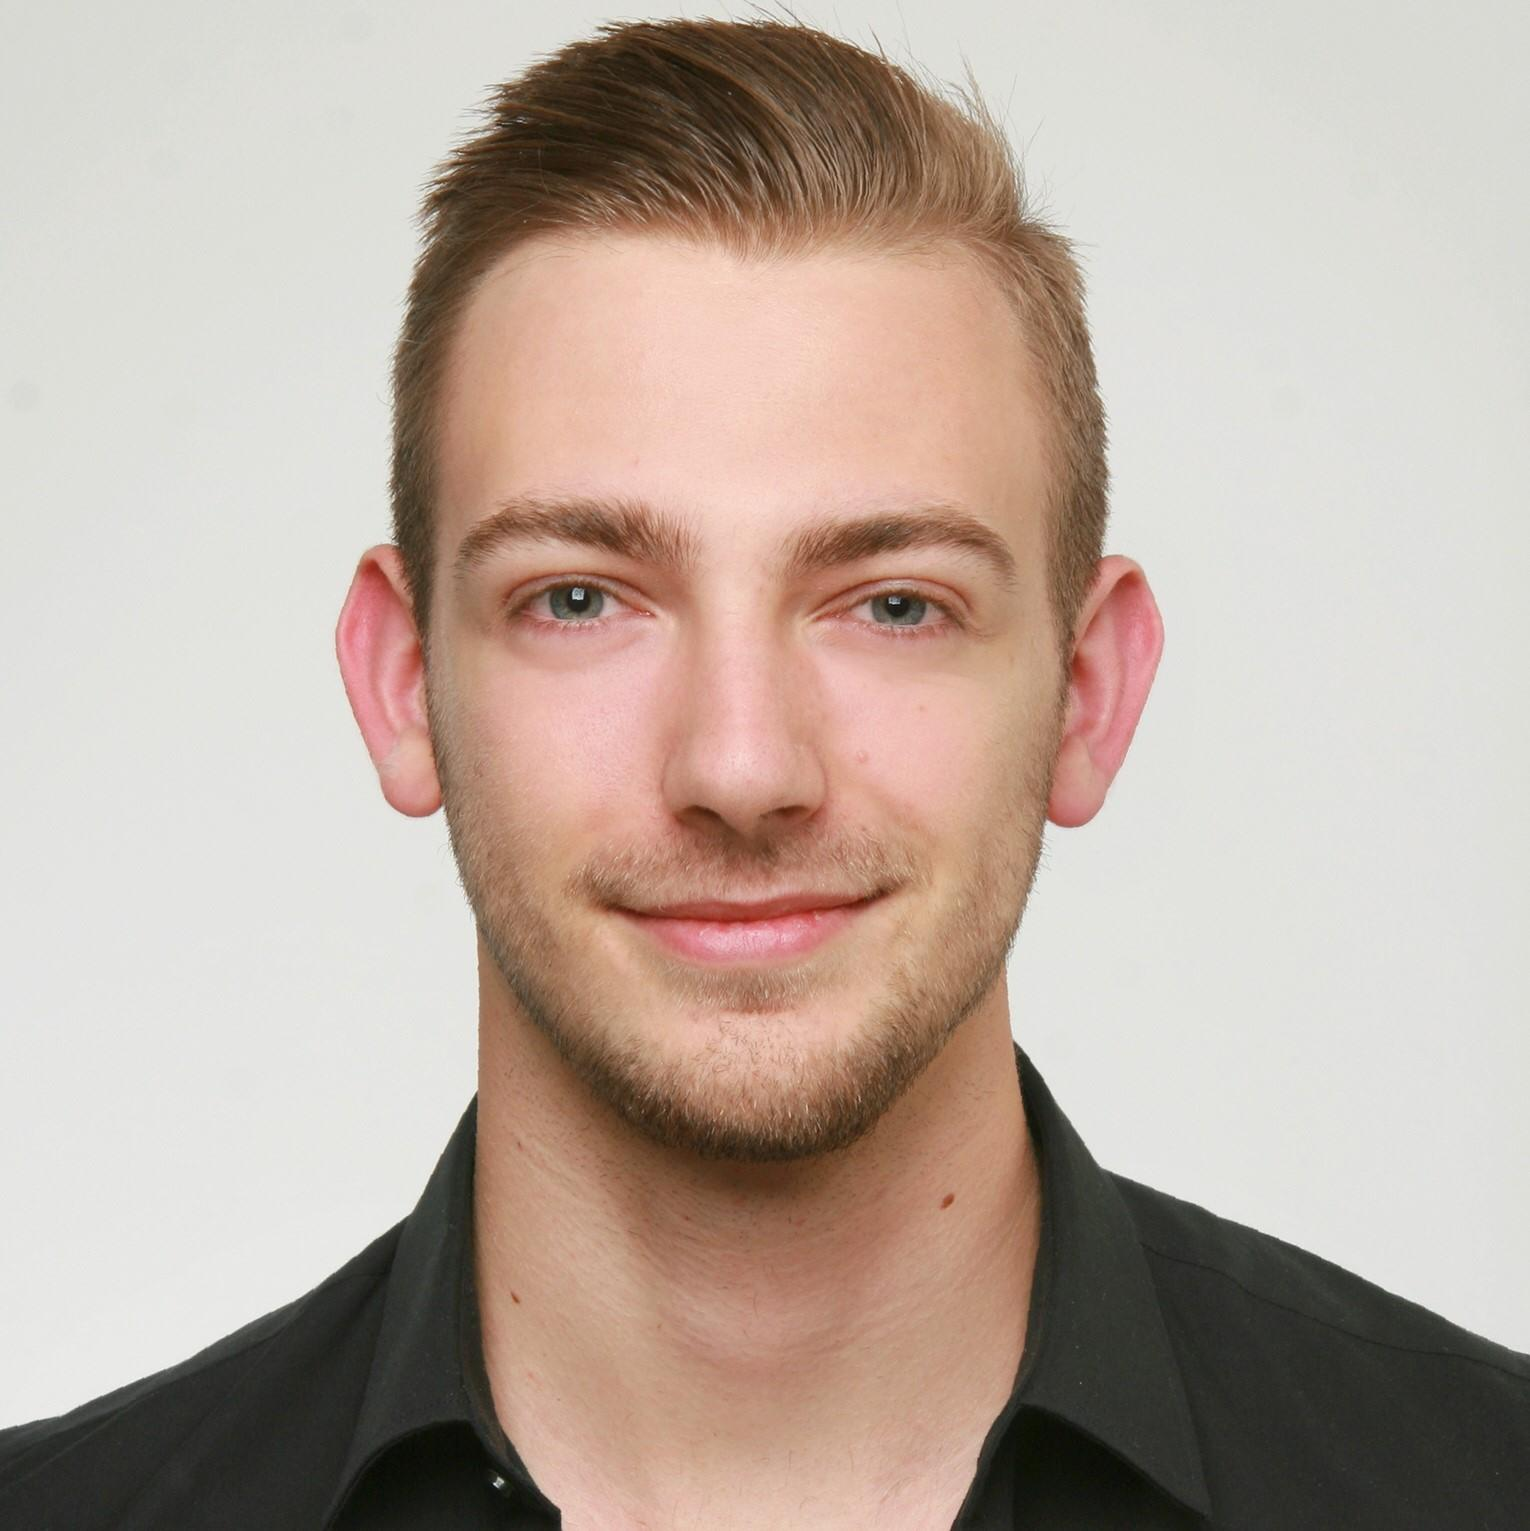 Blog Author: Lukas Mautner